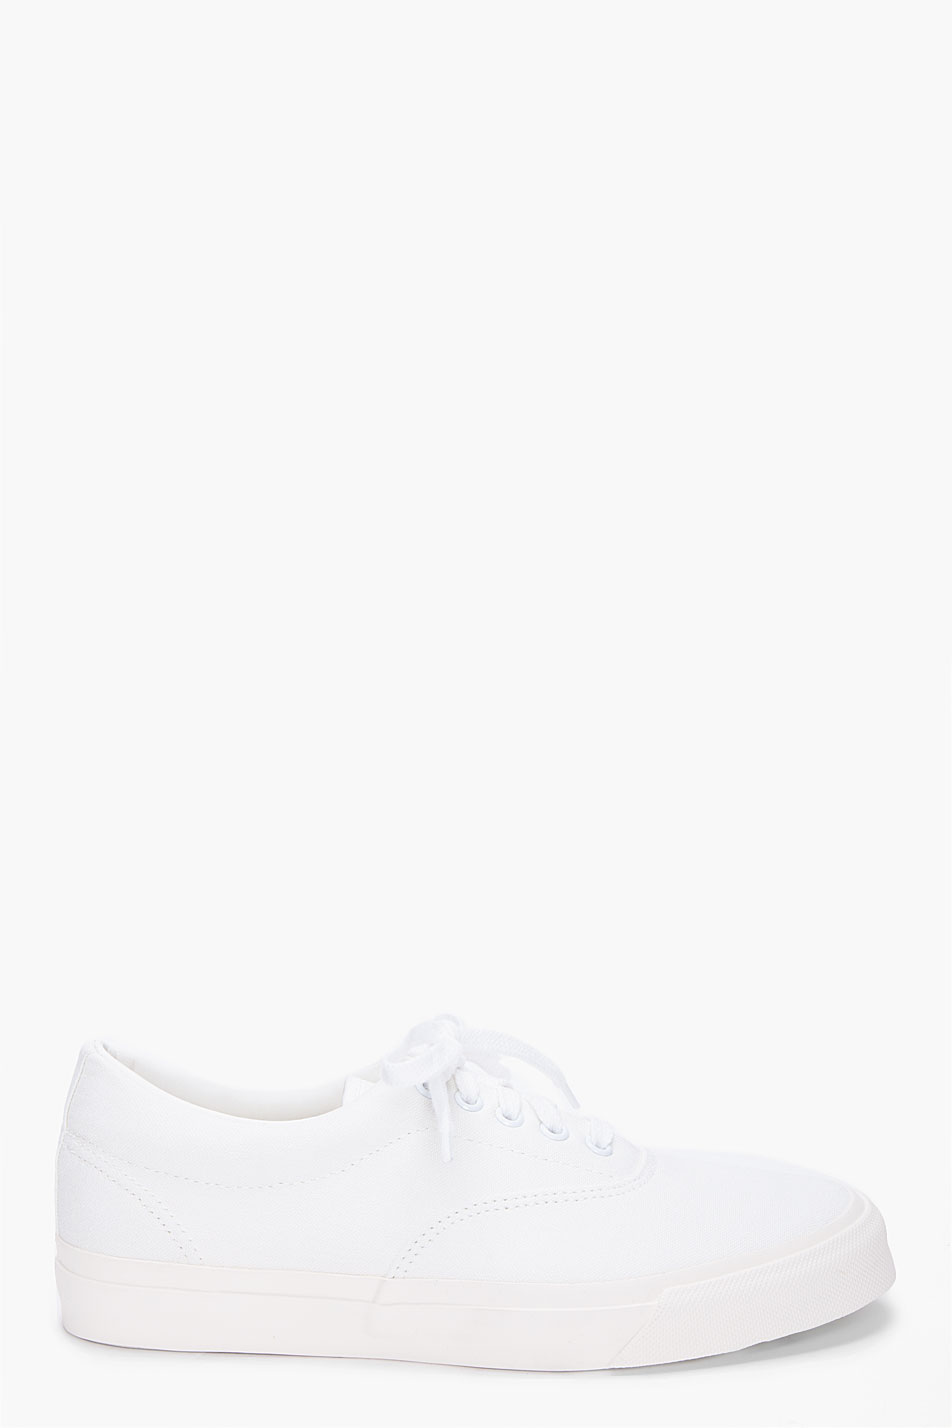 d7610261115 comme-des-garcons-white-white-canvas-sneakers-product-1-2998529-796414607.jpeg